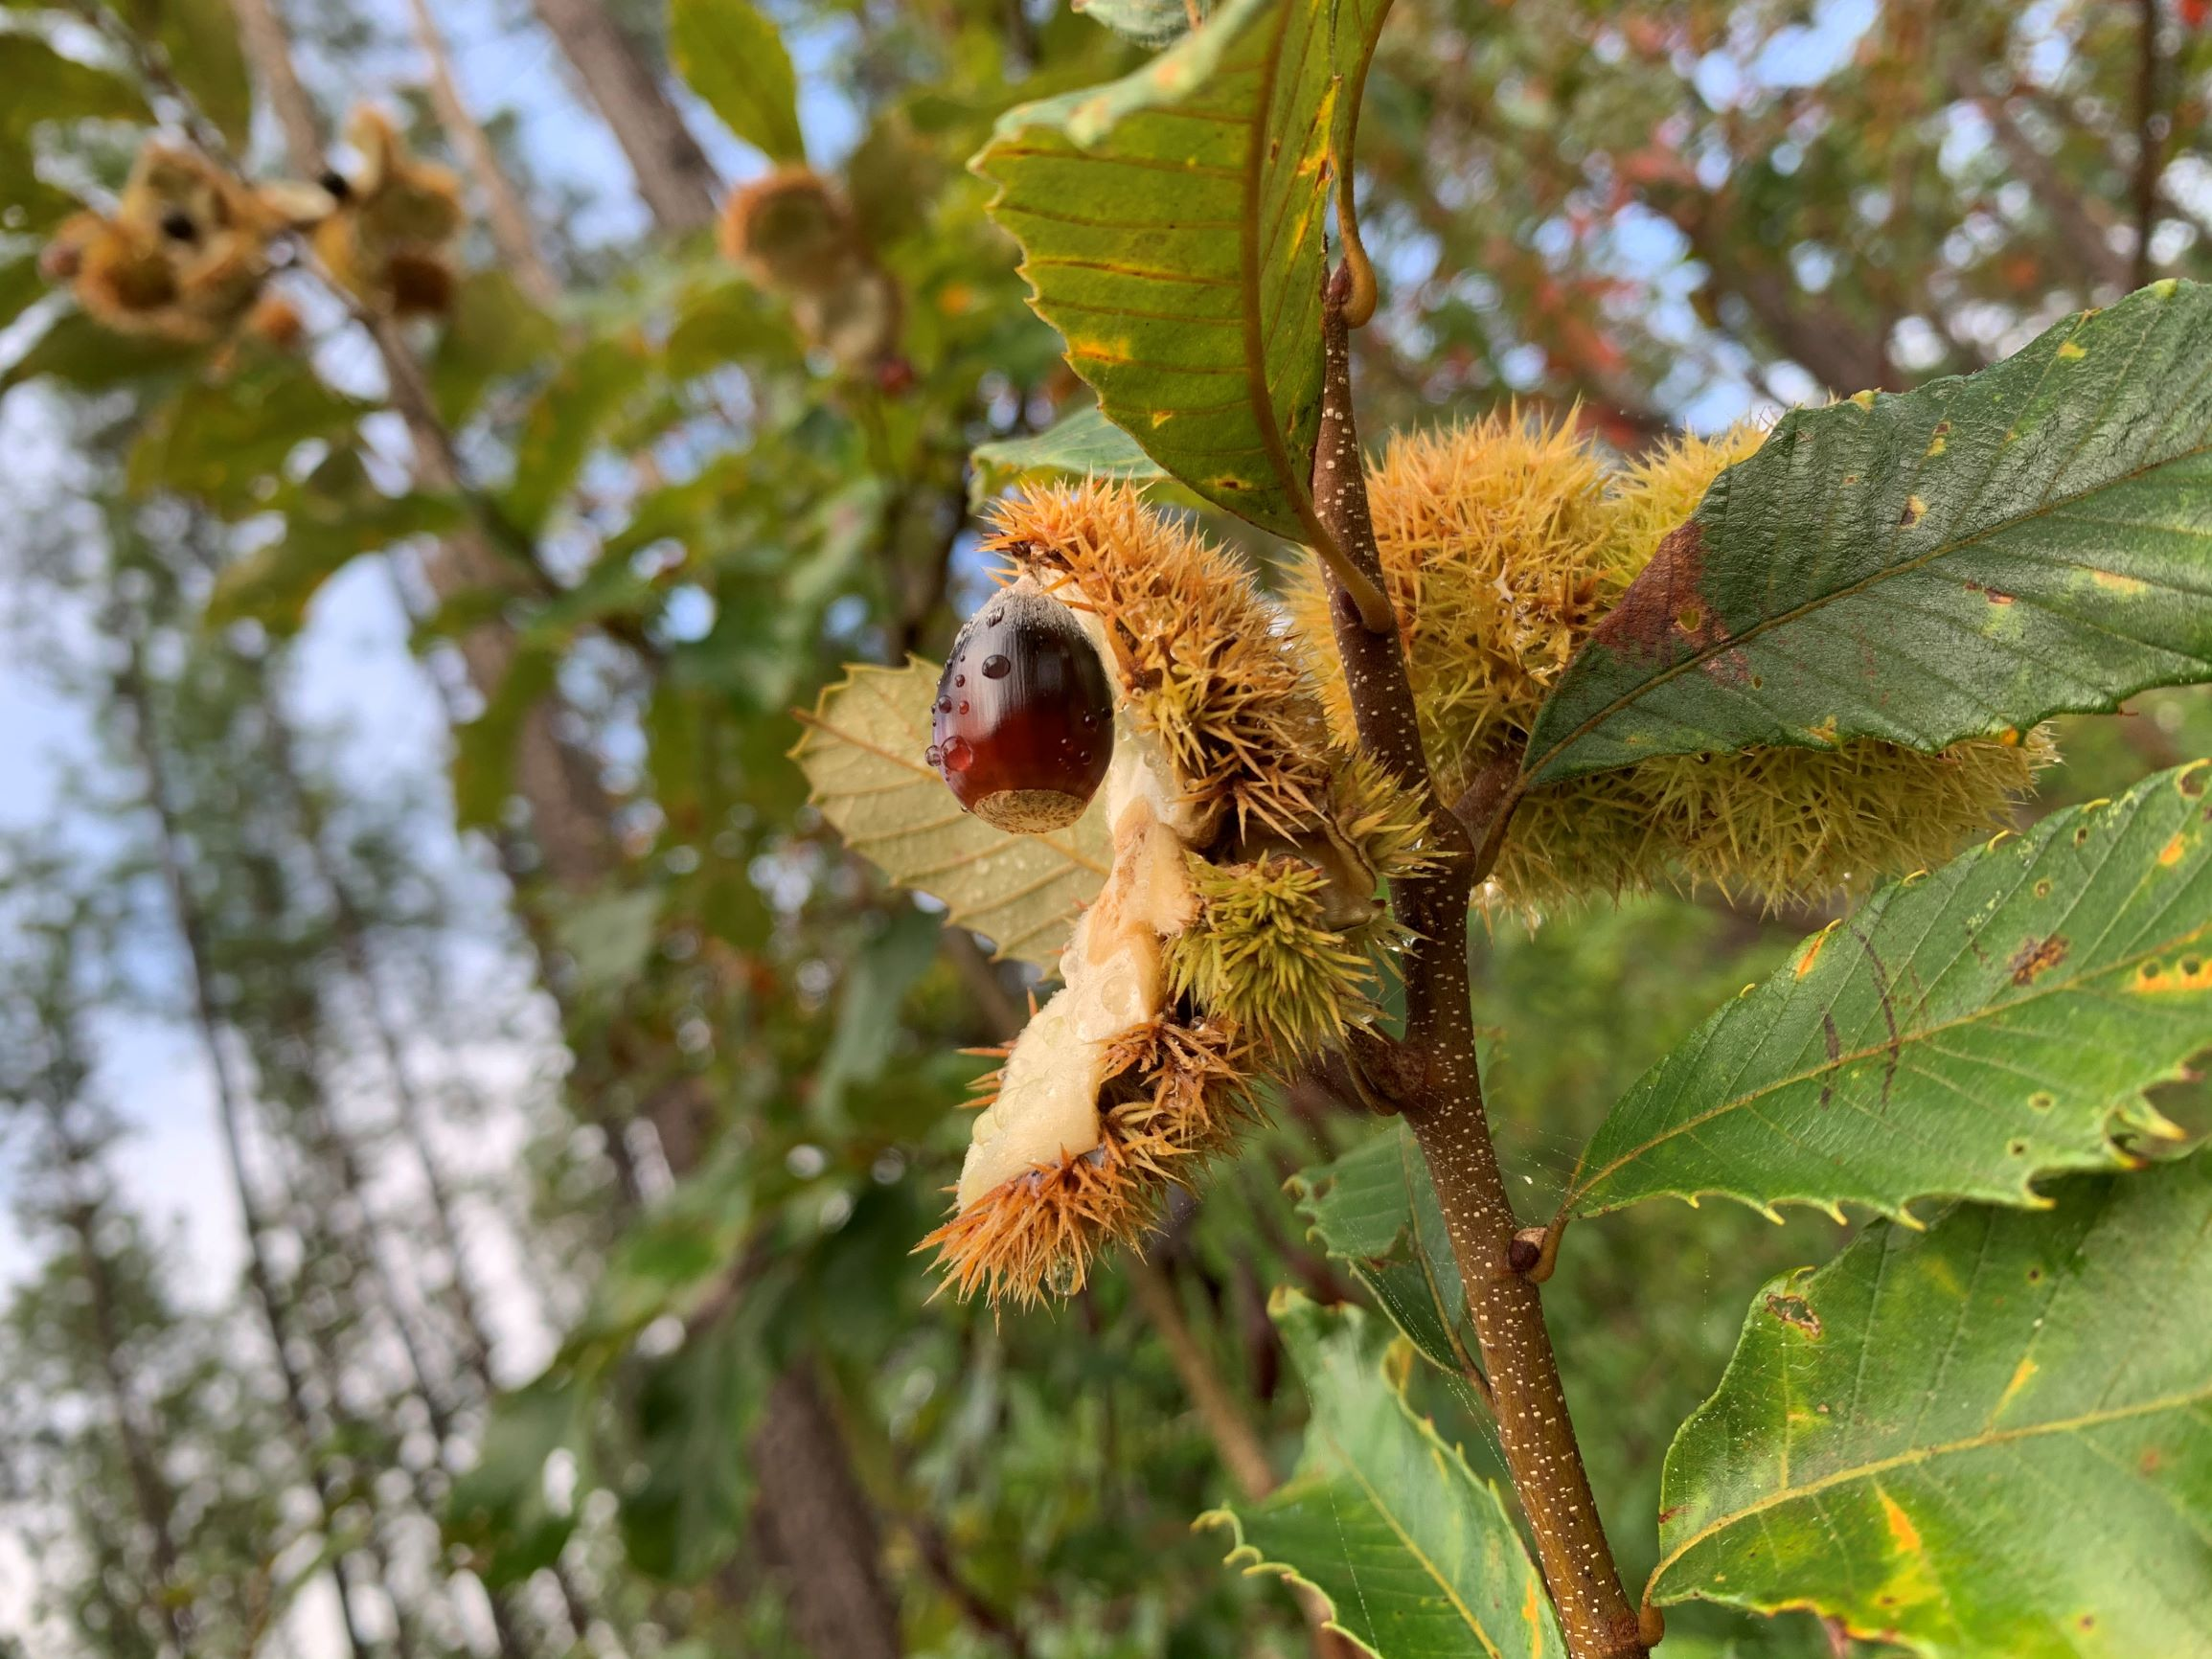 The Scientific Name is Castanea pumila. You will likely hear them called Common Chinquapin, Allegheny Chinquapin, Chinkapin, Dwarf Chinquapin. This picture shows the Excerpted from Flora of the Southeastern United States, Alan Weakley, 20 October 2020